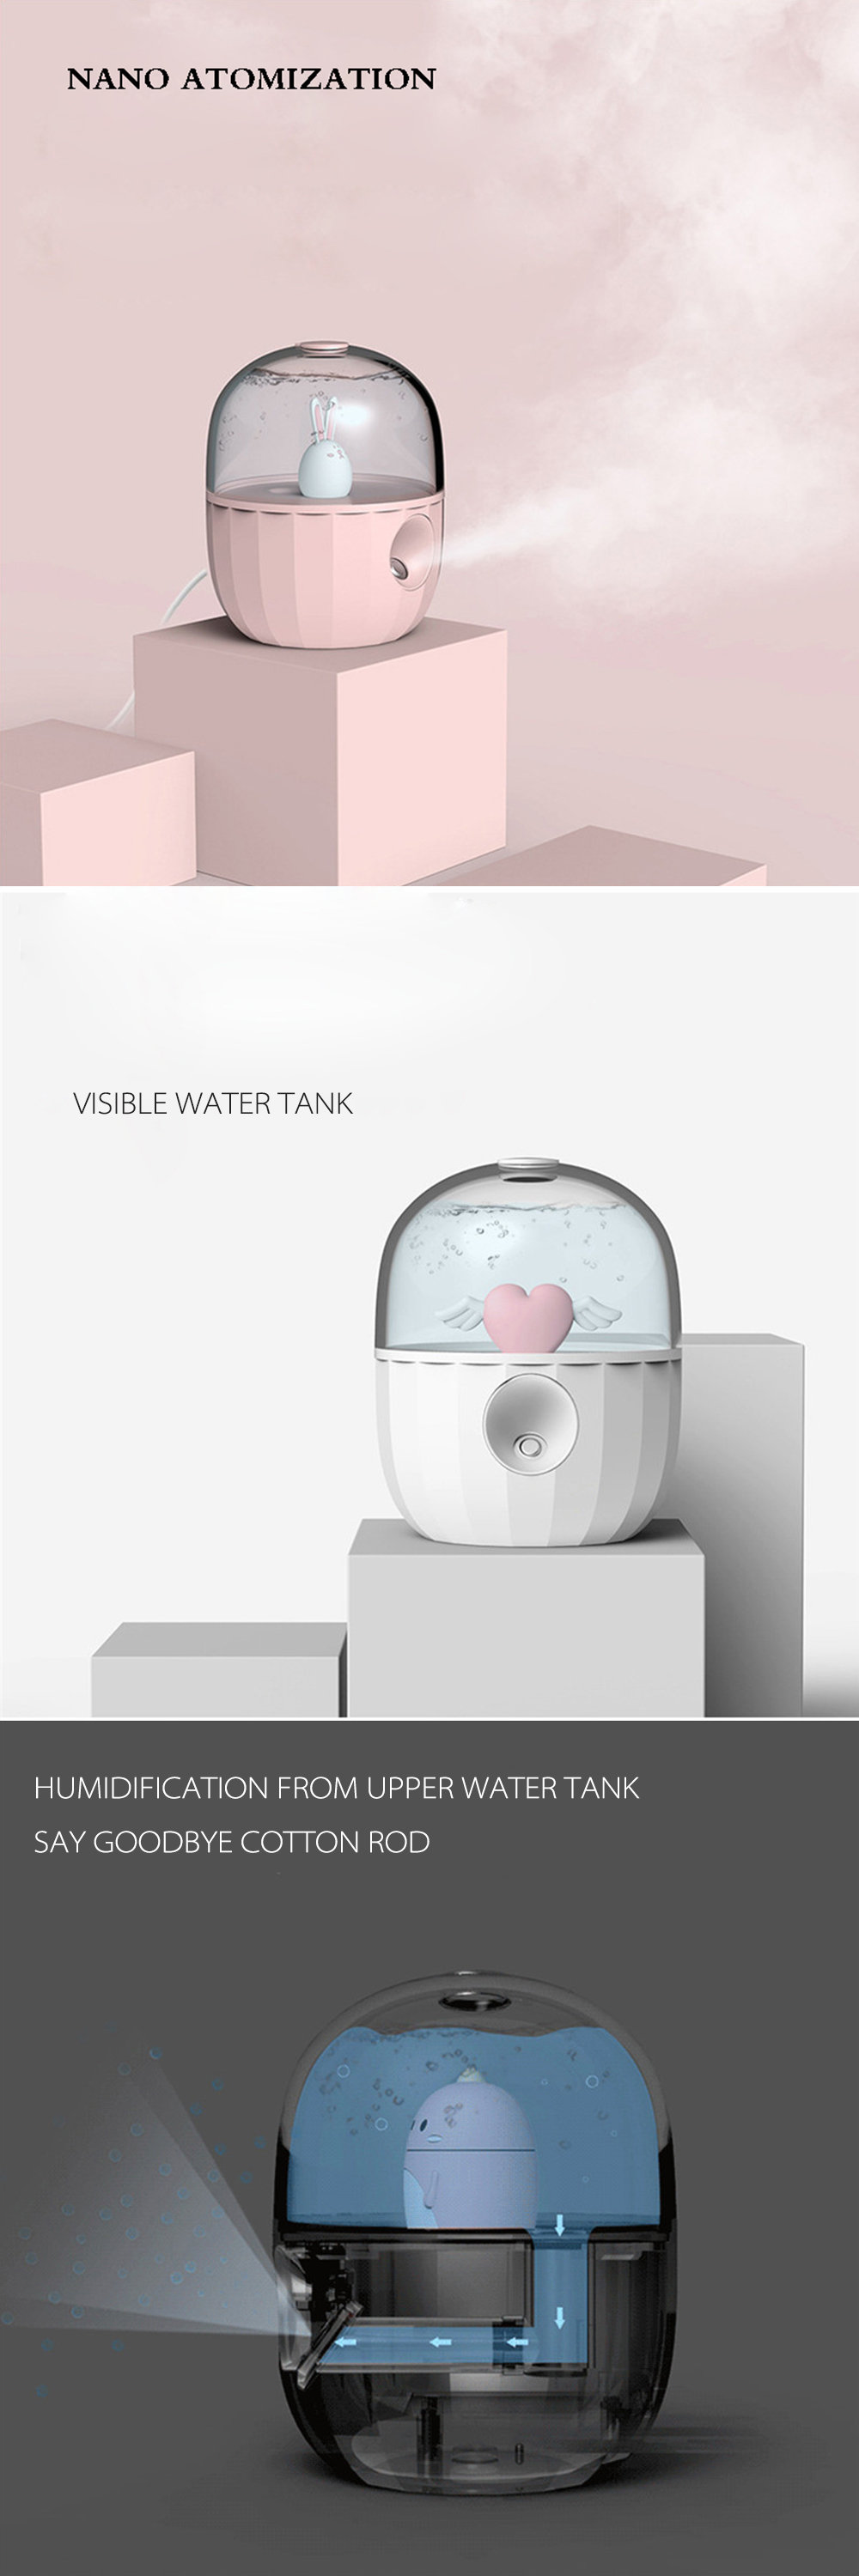 Adorable Humidifier superproductonline